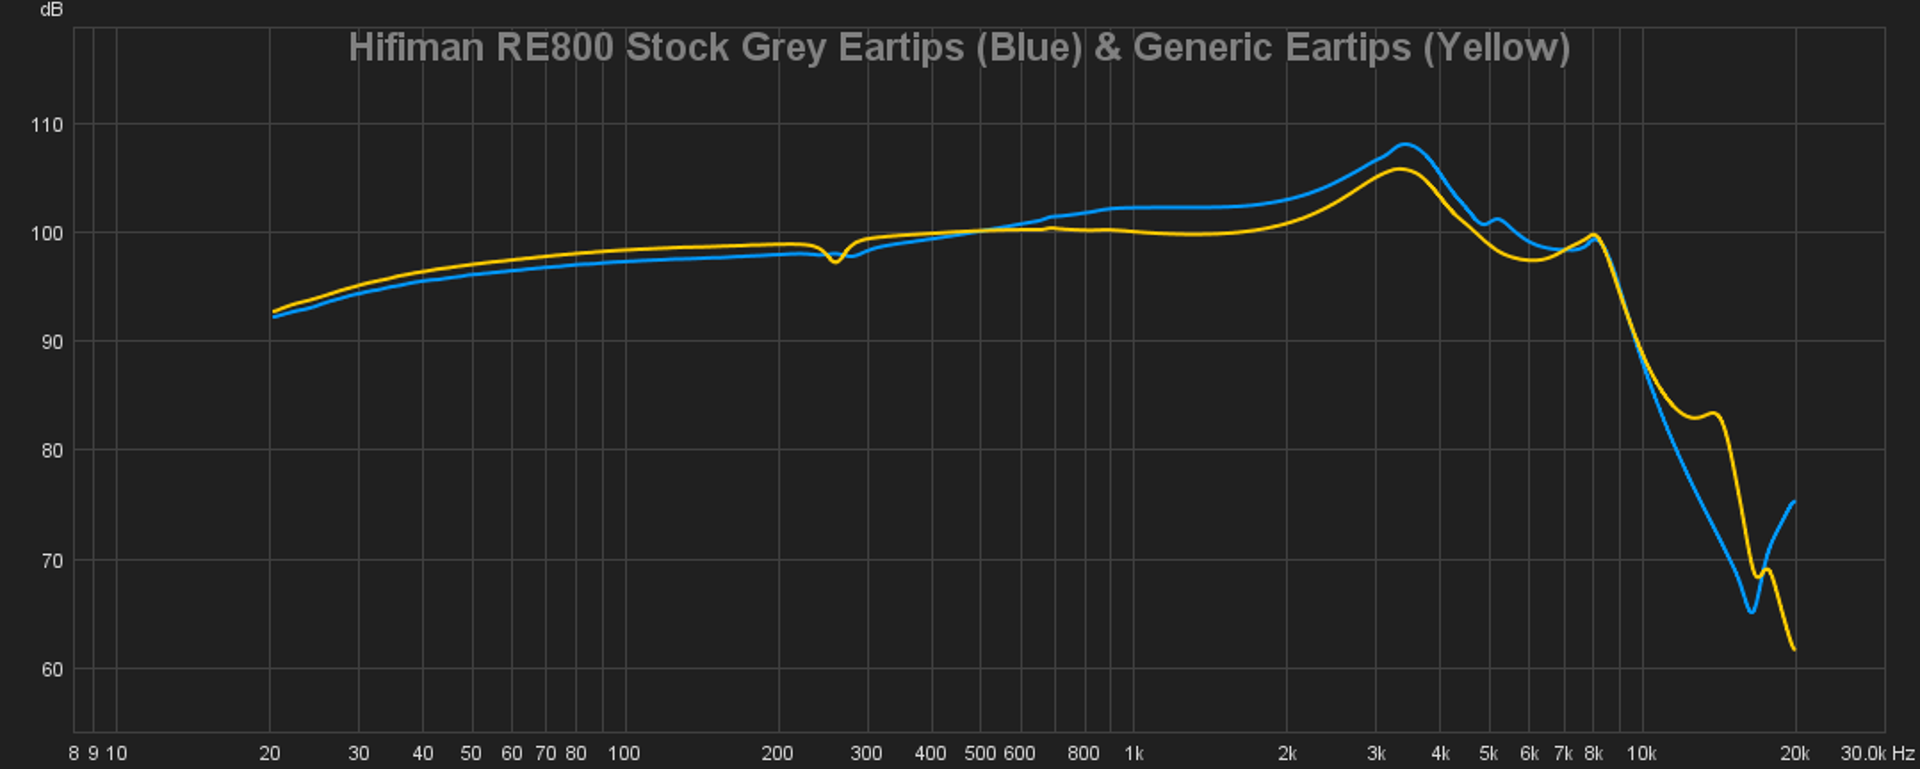 09 Hifiman RE800 Stock Grey Eartips (Blue) & Generic Eartips (Yellow).png